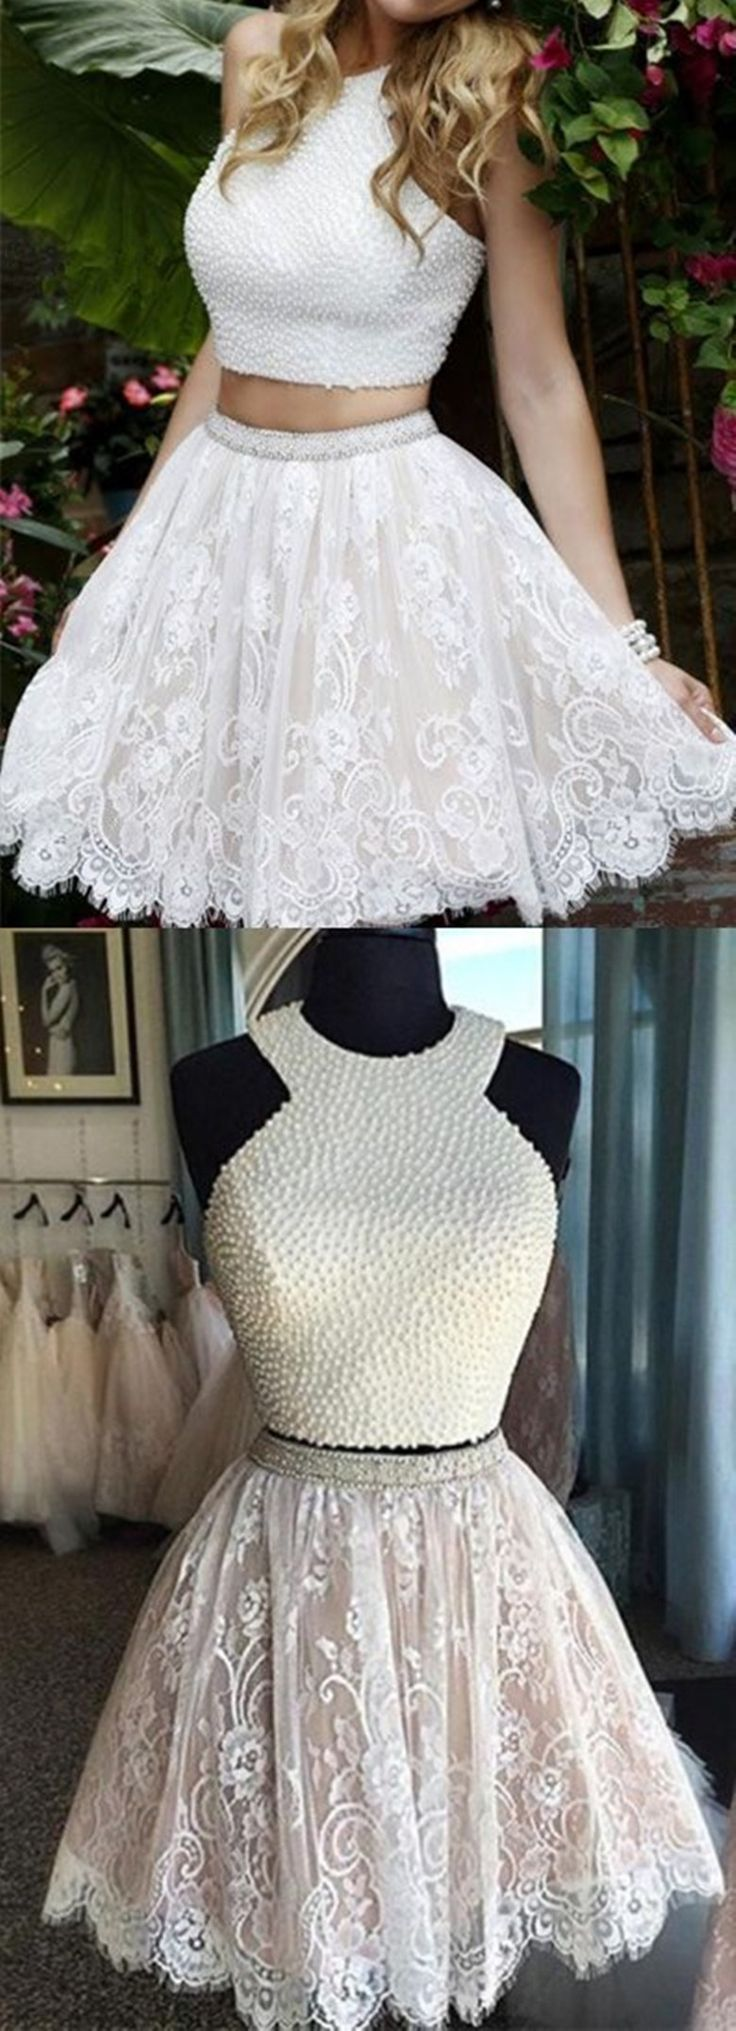 homecoming dress,2016 homecoming dress,short prom dress,lace homecoming dress,white homecoming dress